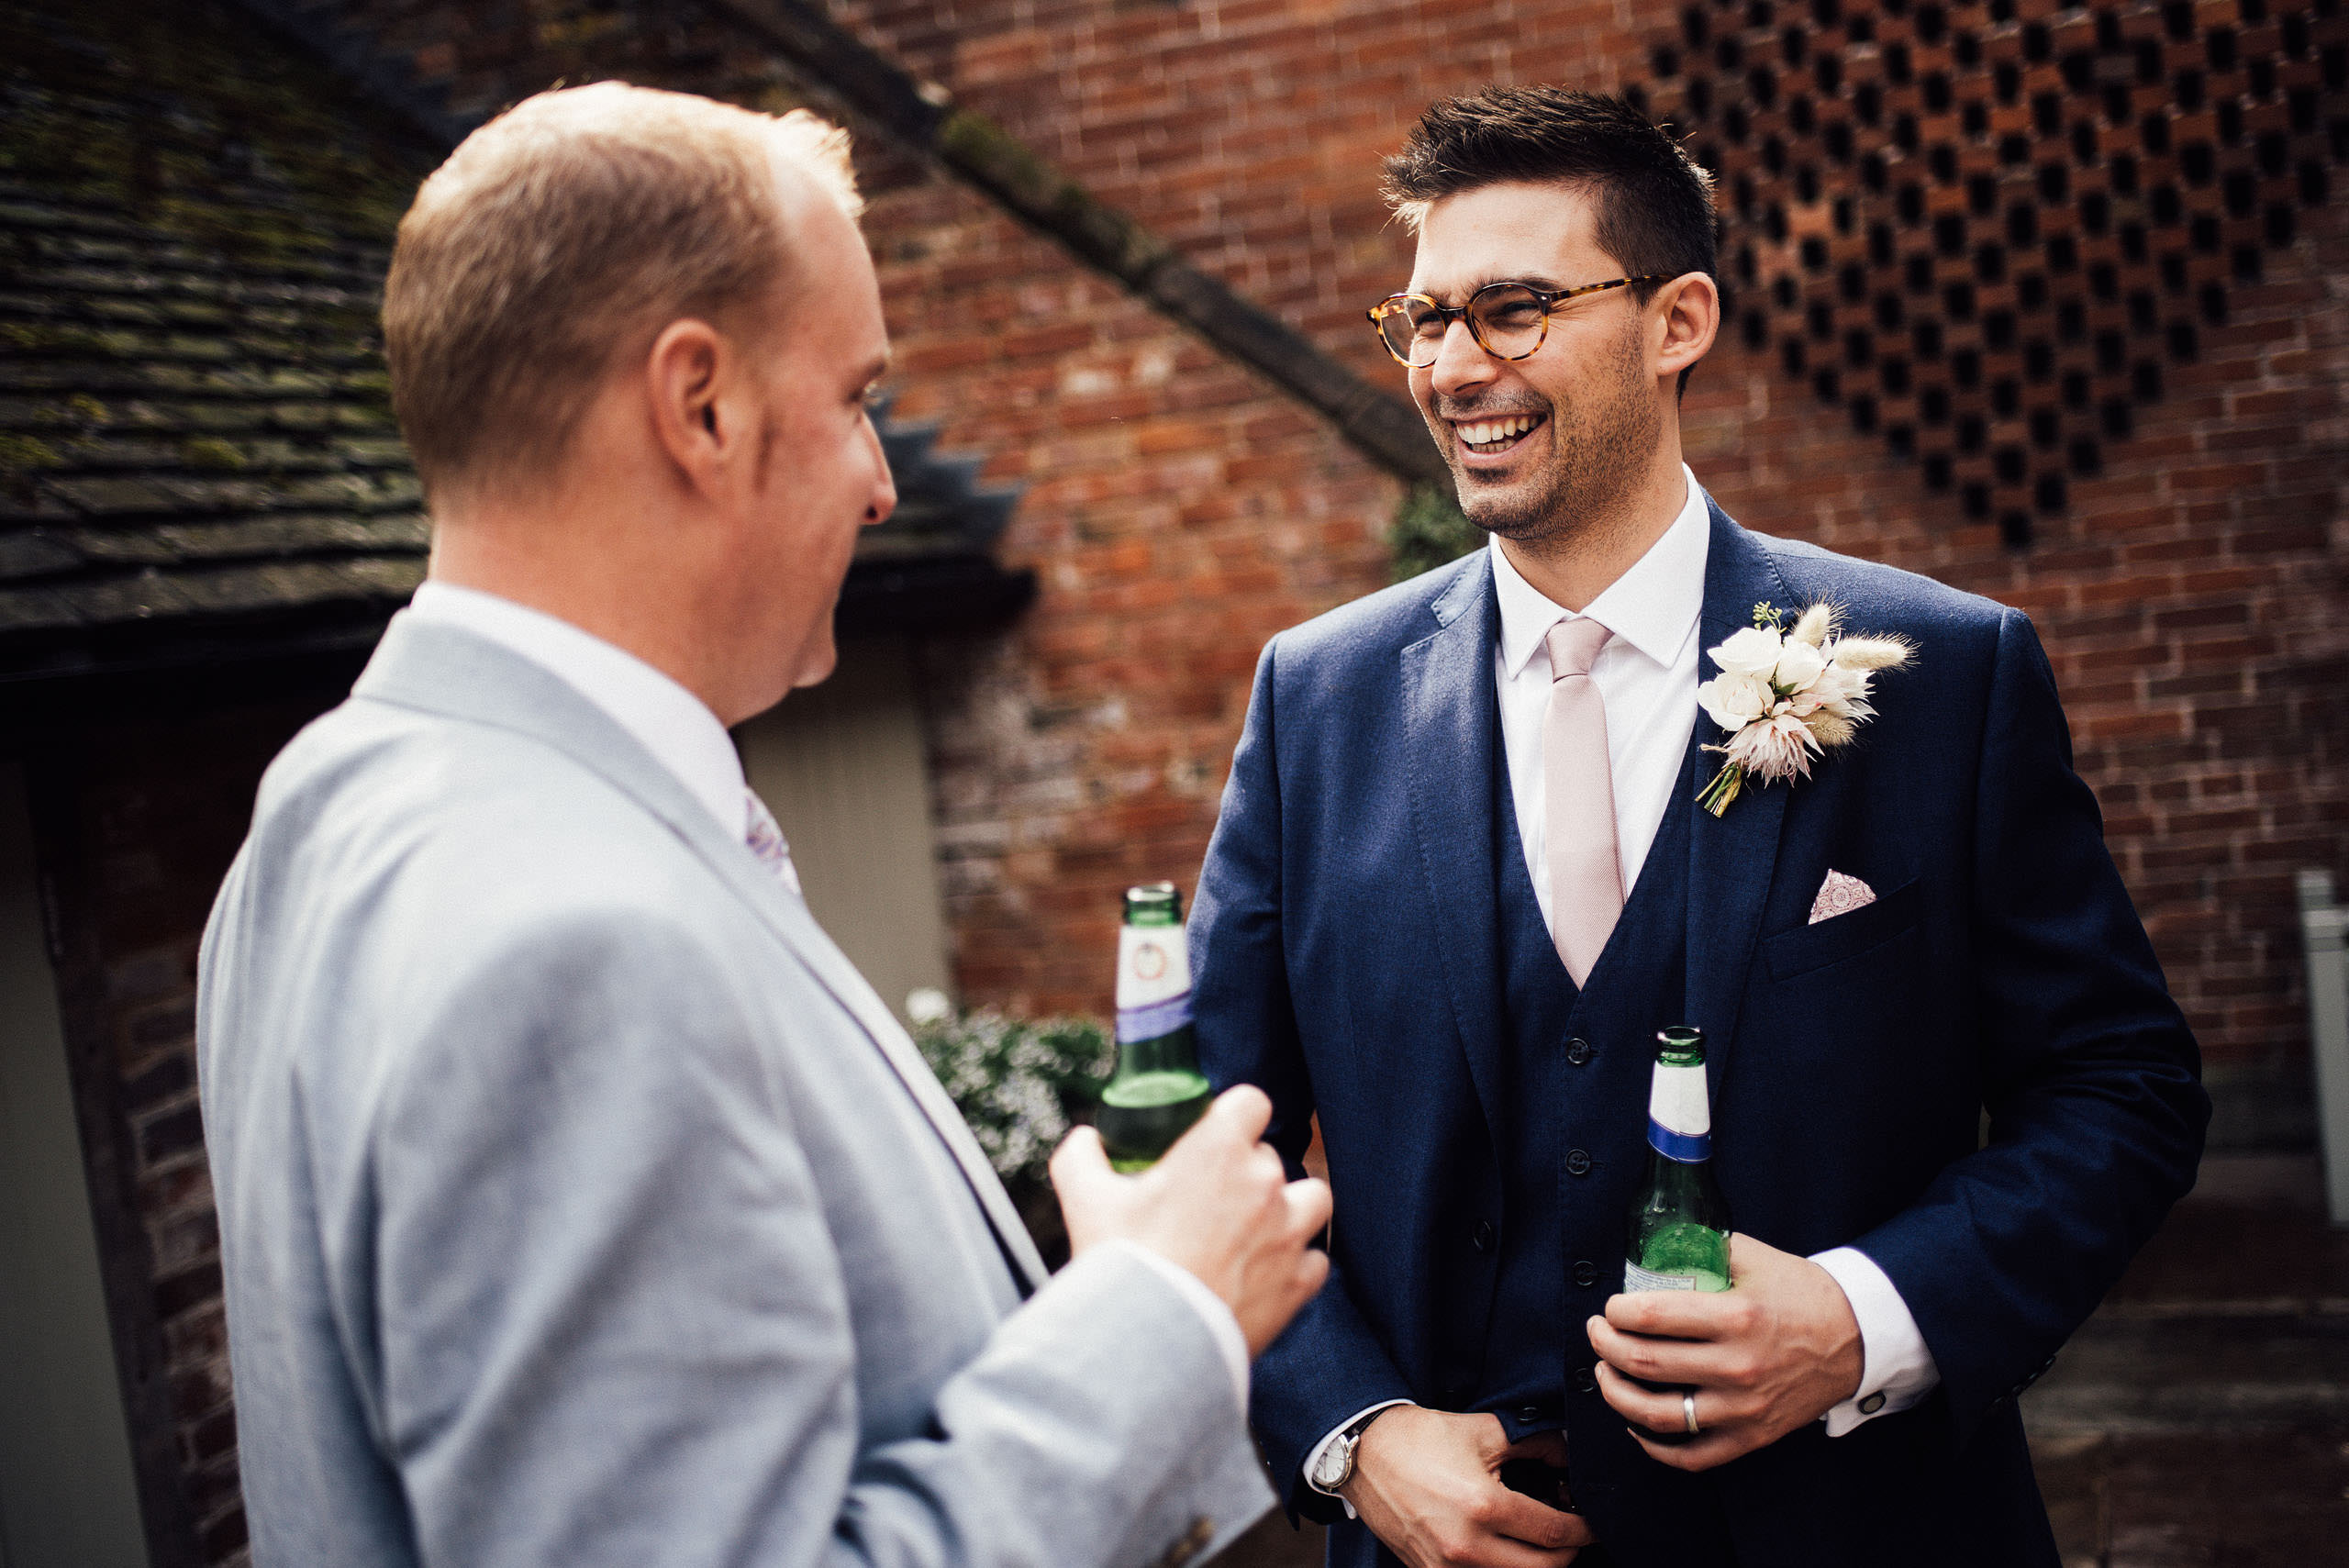 Shustoke barn wedding photography, creative and fun documentary photography.